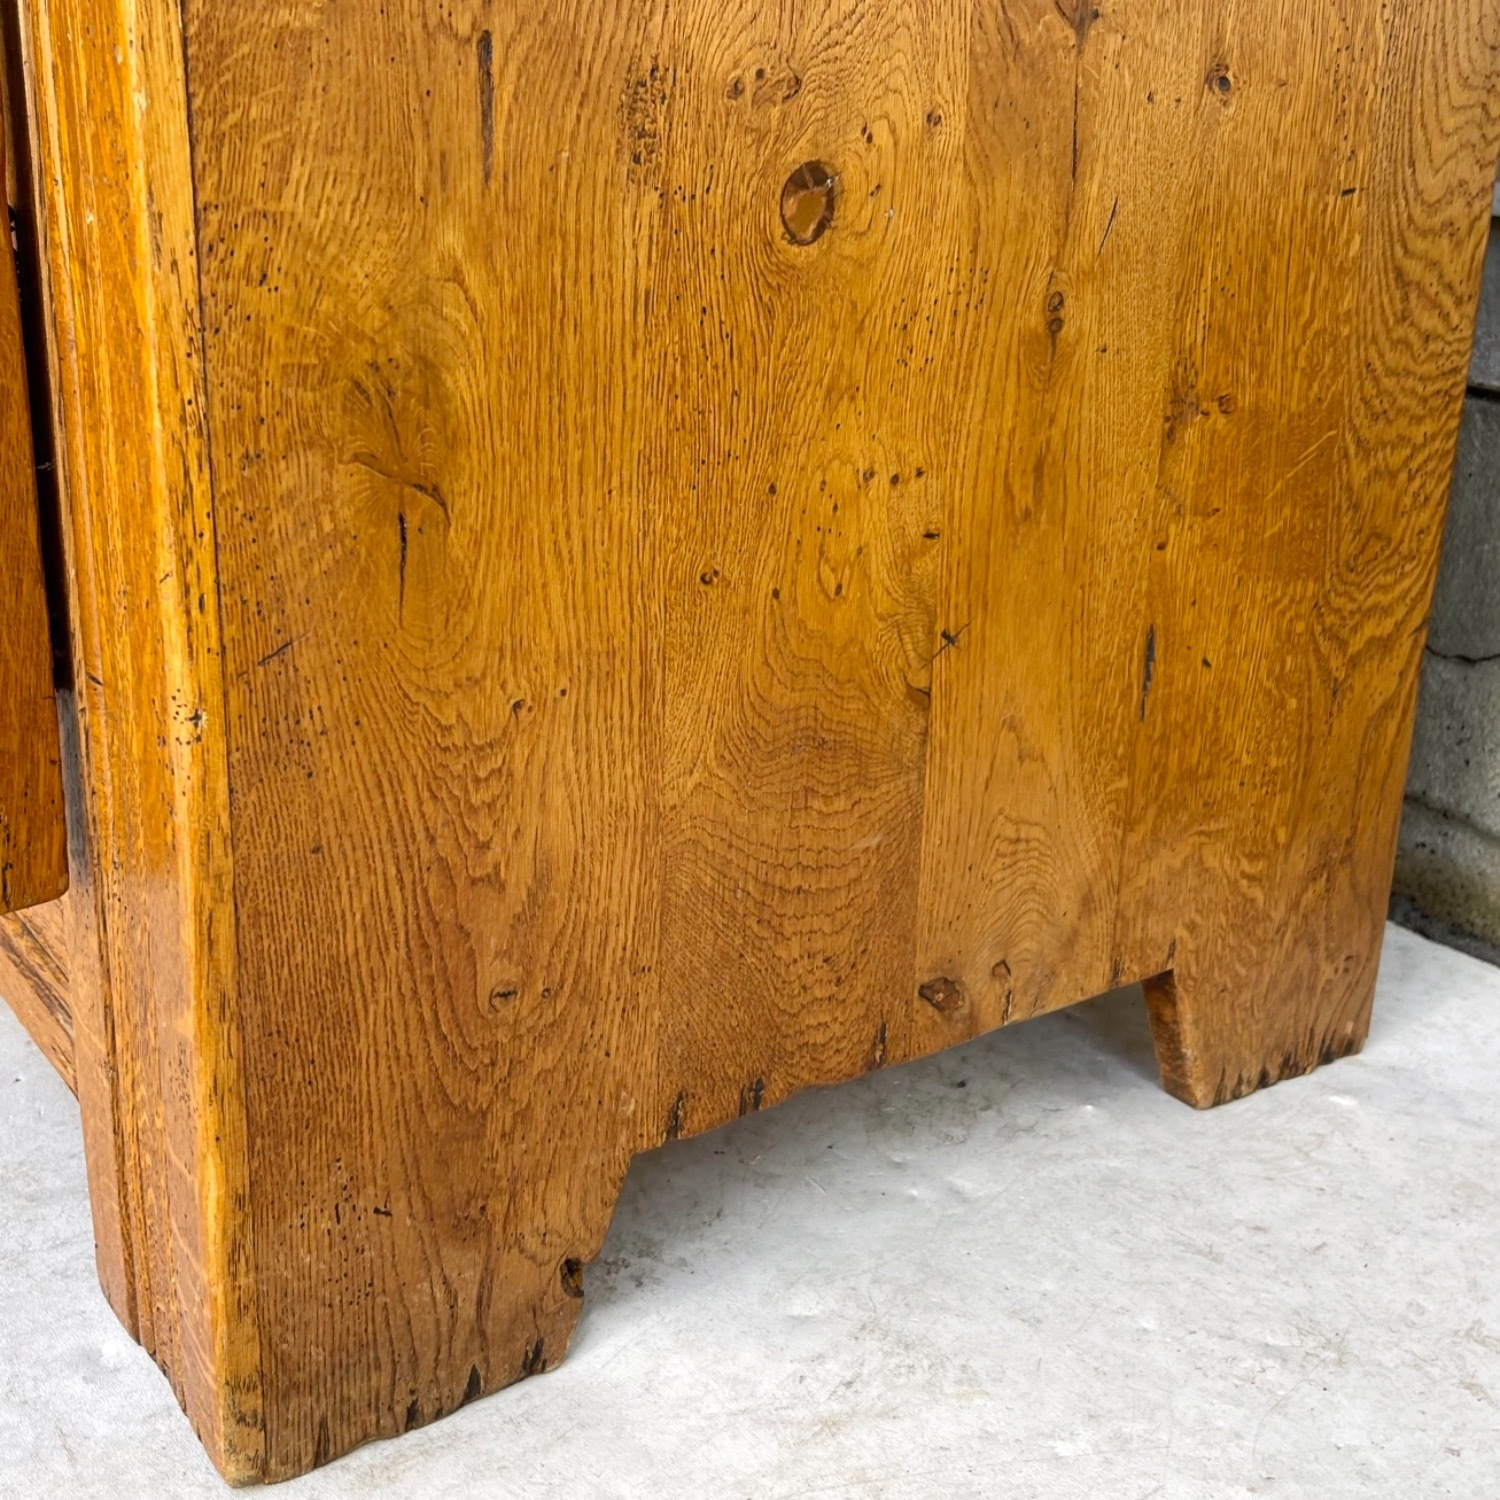 Antique Country Style Cupboard With Topper - image-24